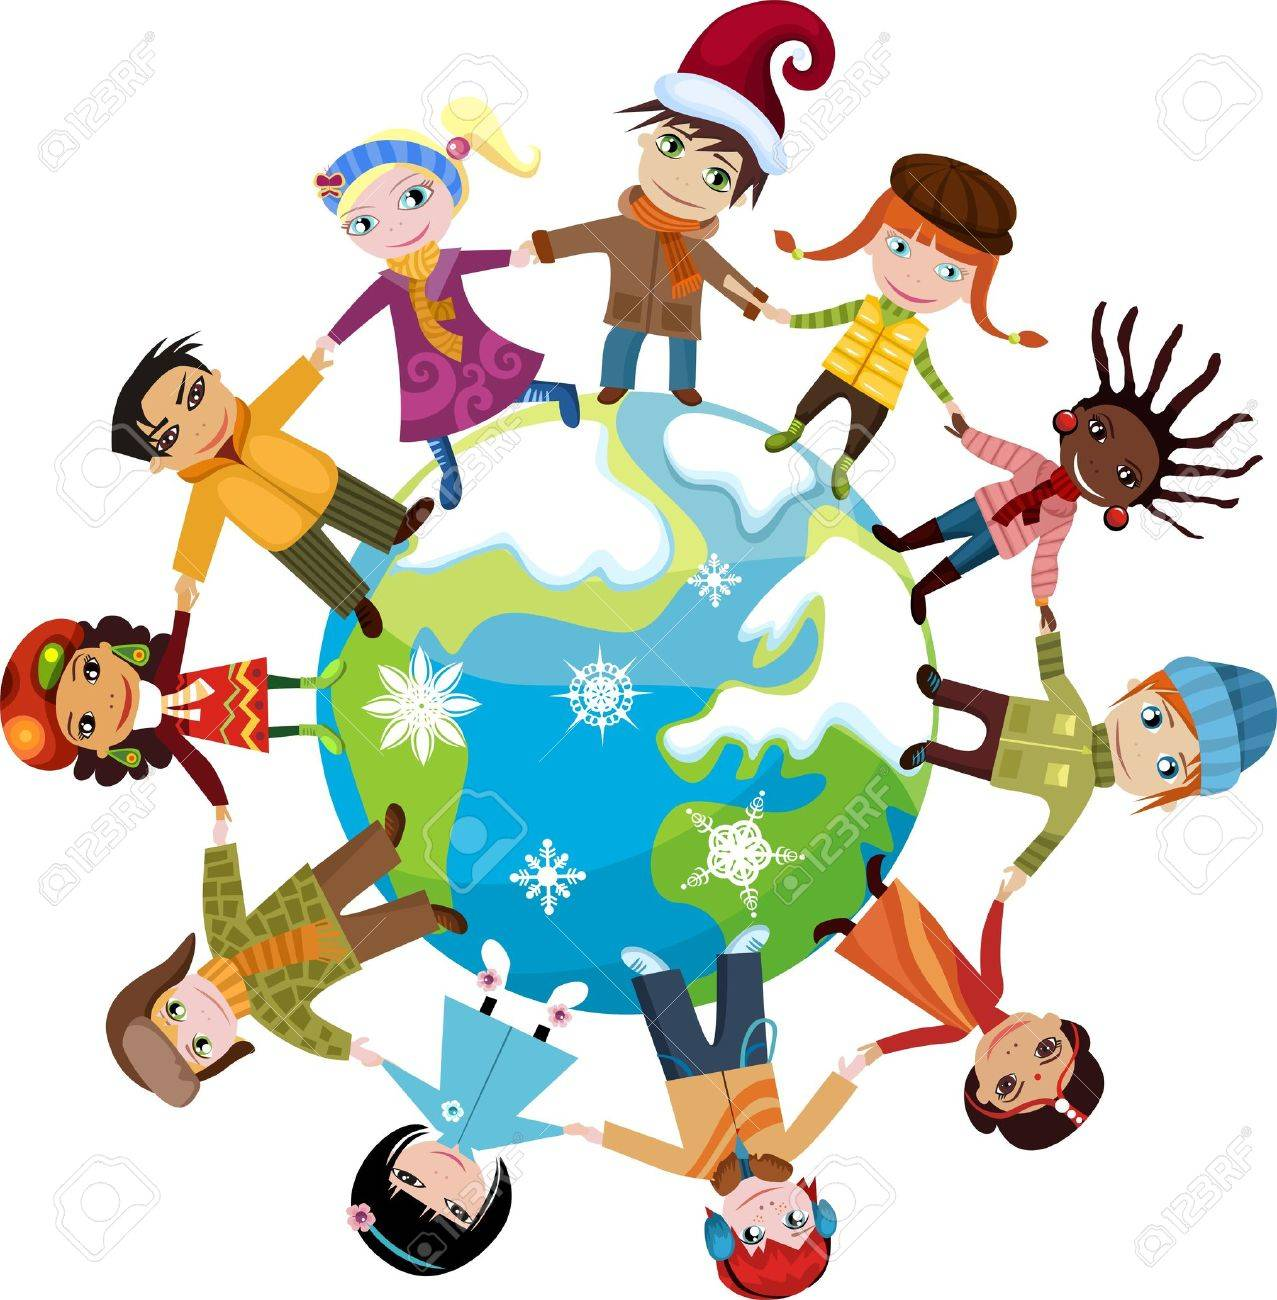 Image result for Christmas earth